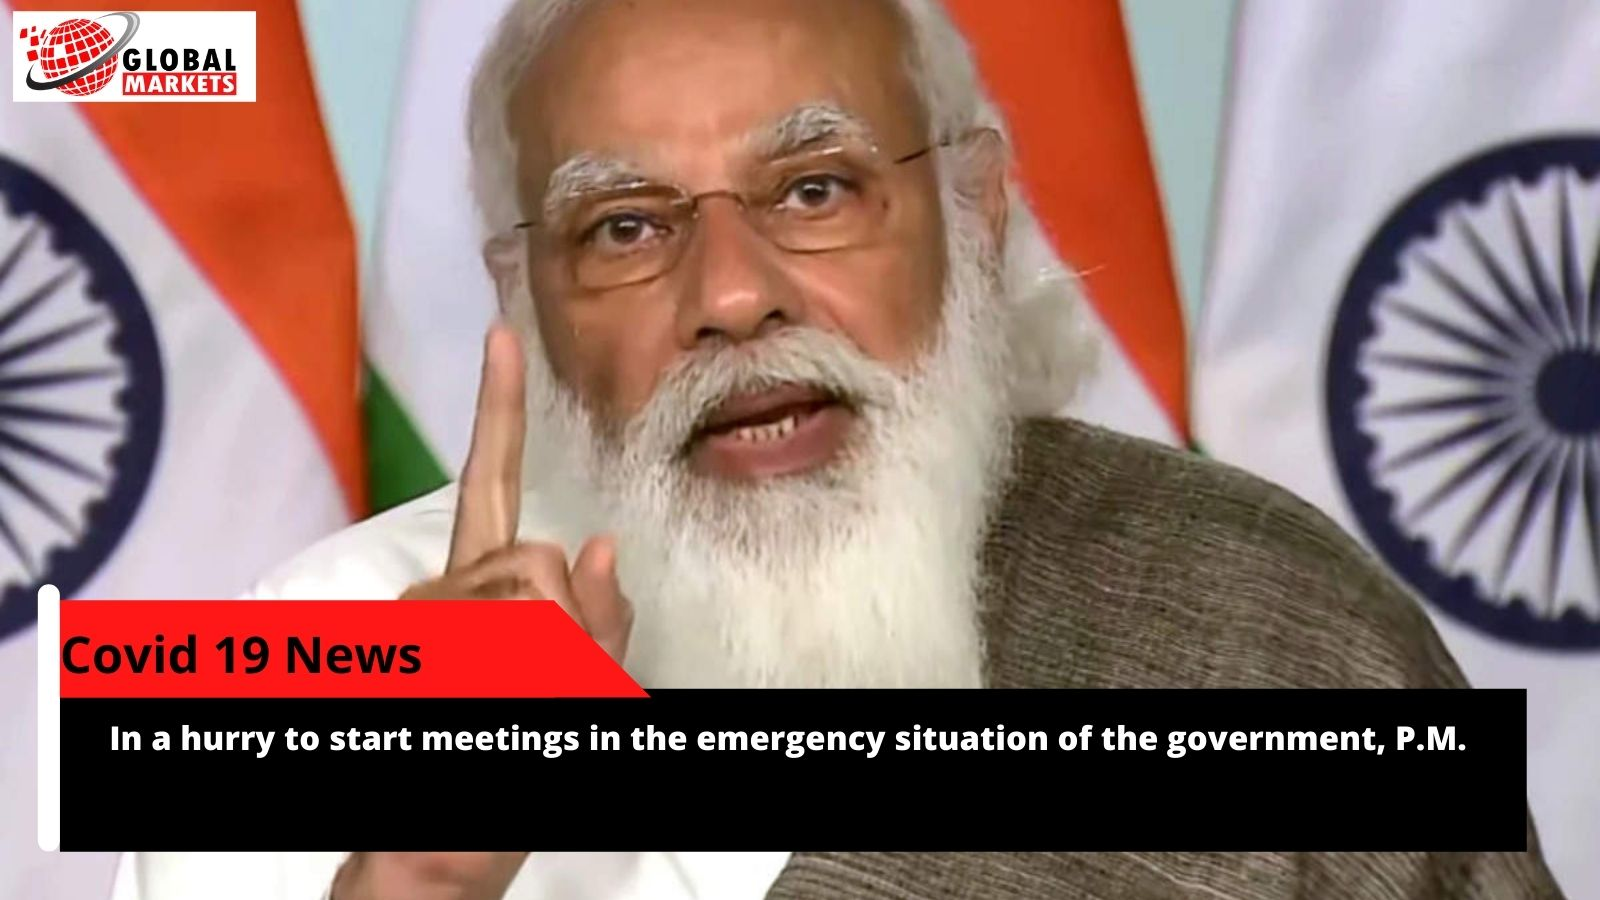 In a hurry to start meetings in the emergency situation of the government, P.M.